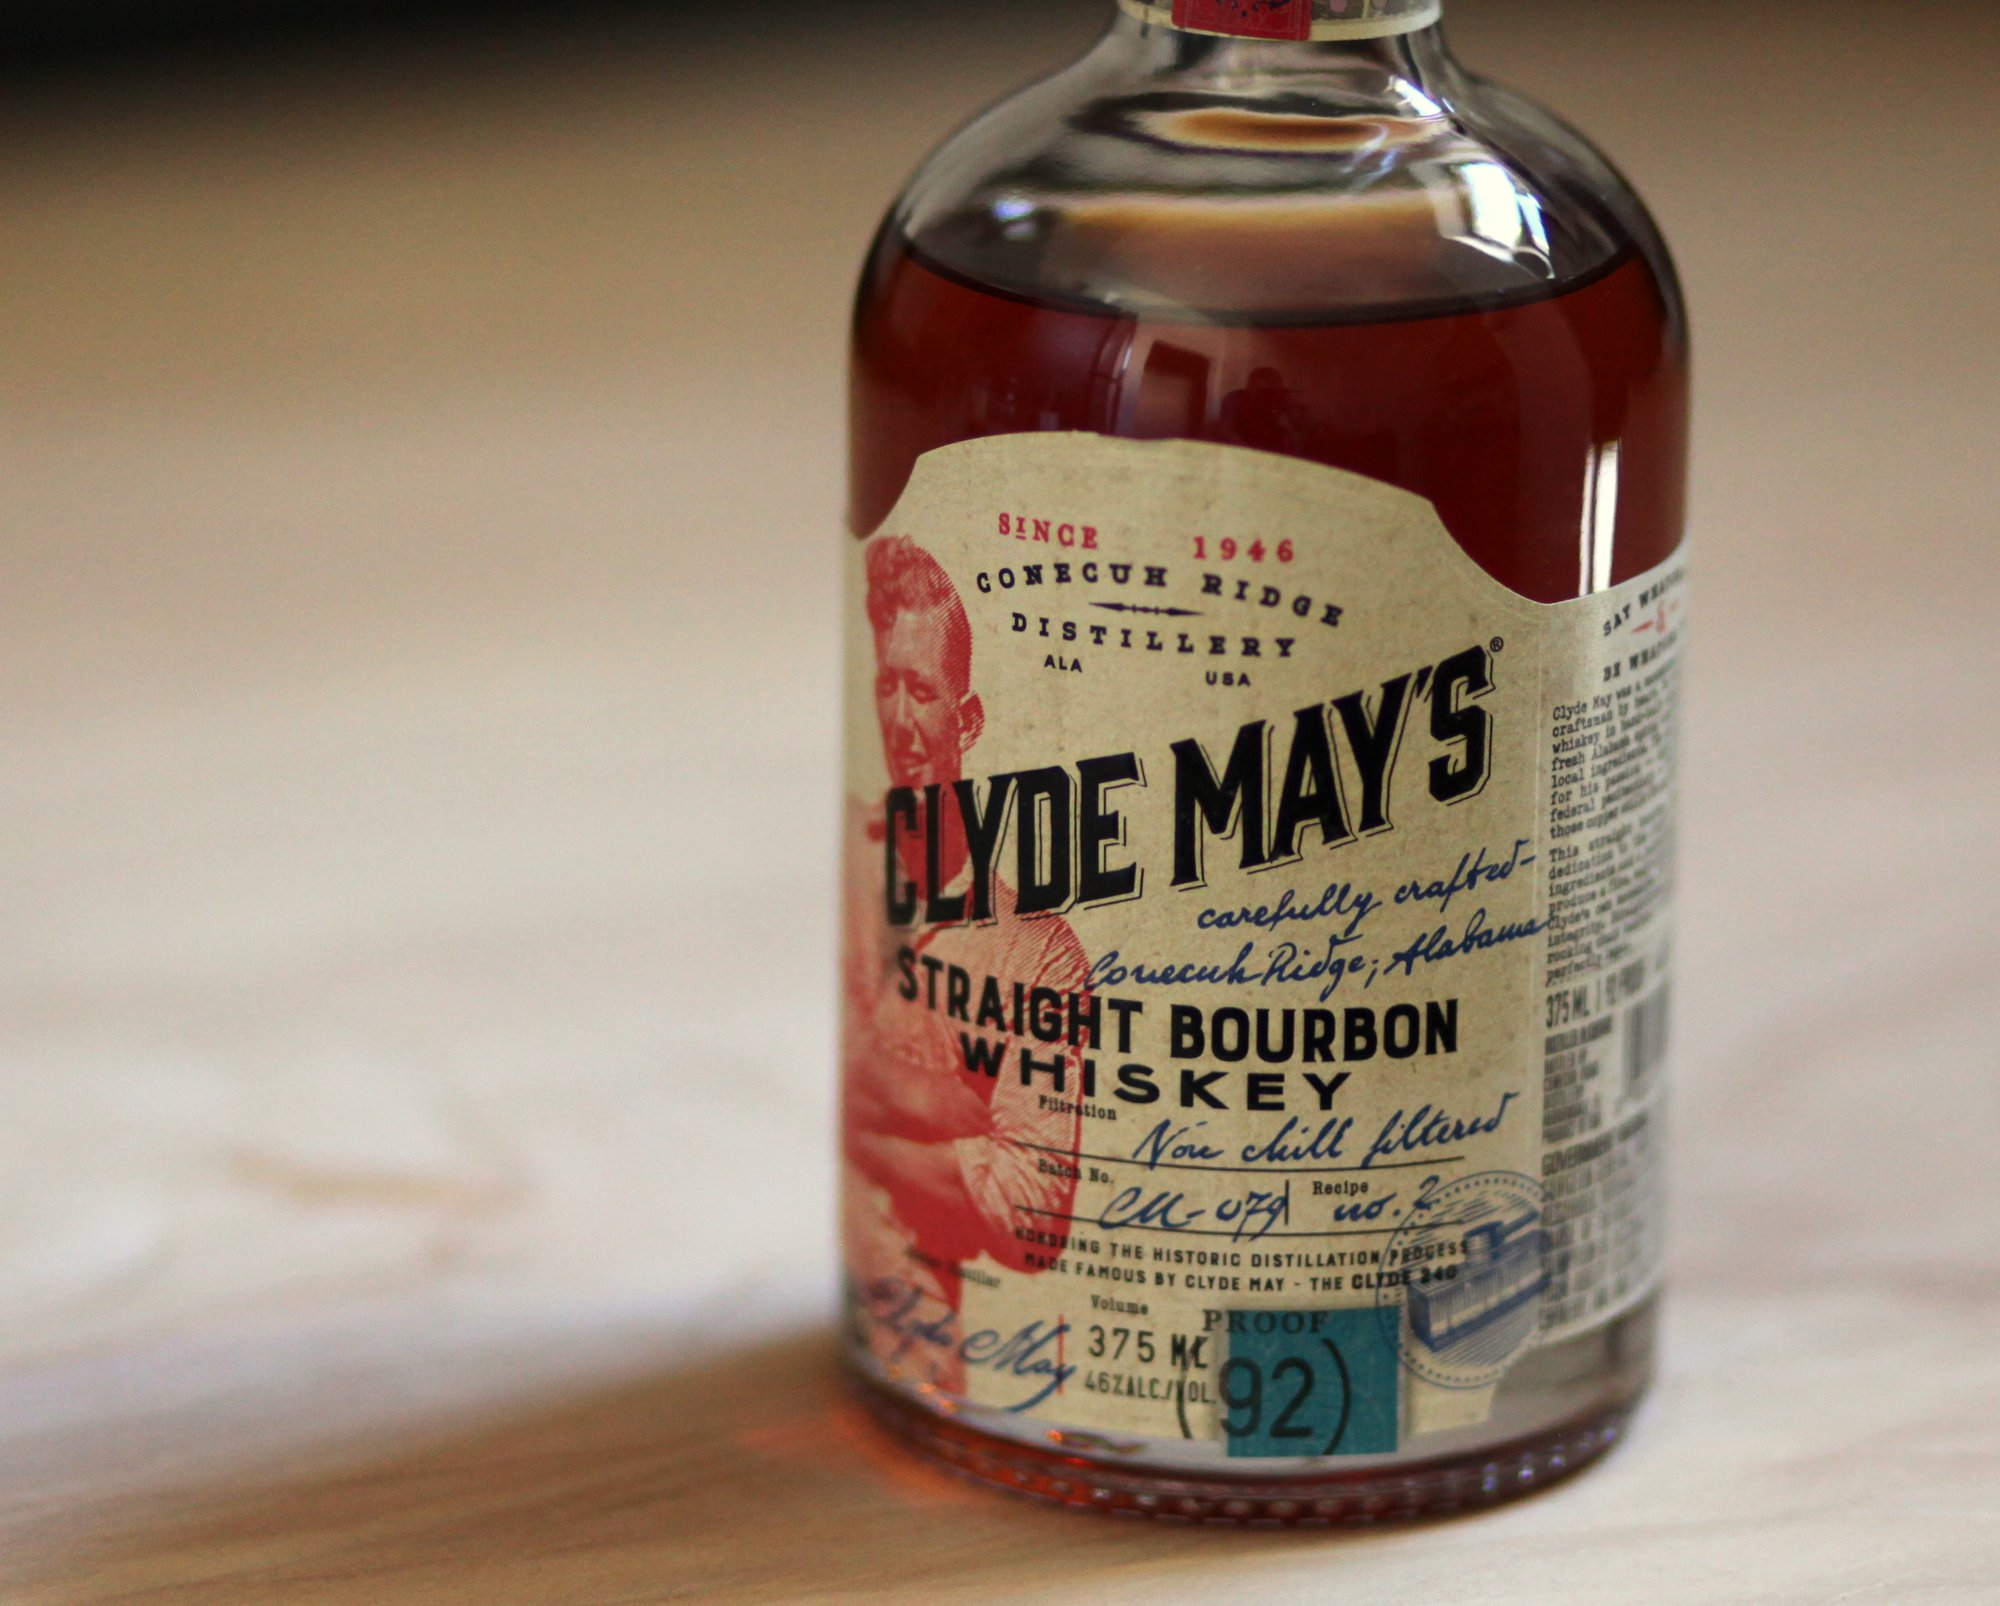 Clyde Mays Straight Bourbon Review